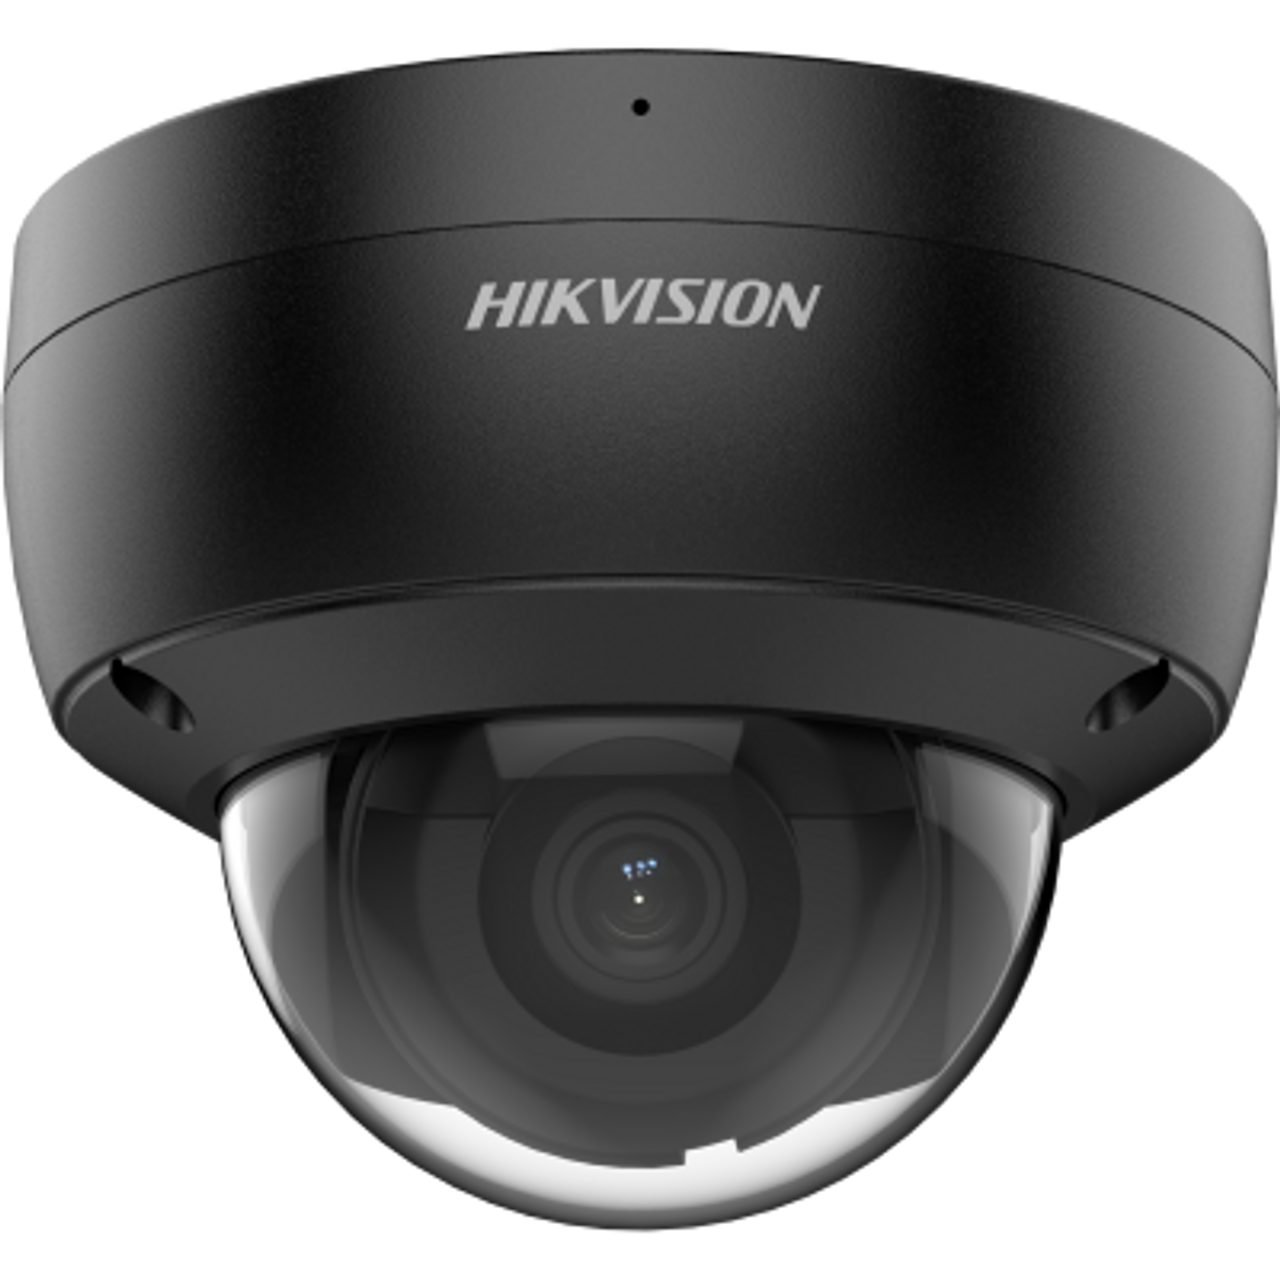 Hikvision AcuSense DS-2CD2146G2-ISU Black 2.8mm Lens 4MP Darkfighter Internal Dome Camera With IR & Built-in mic